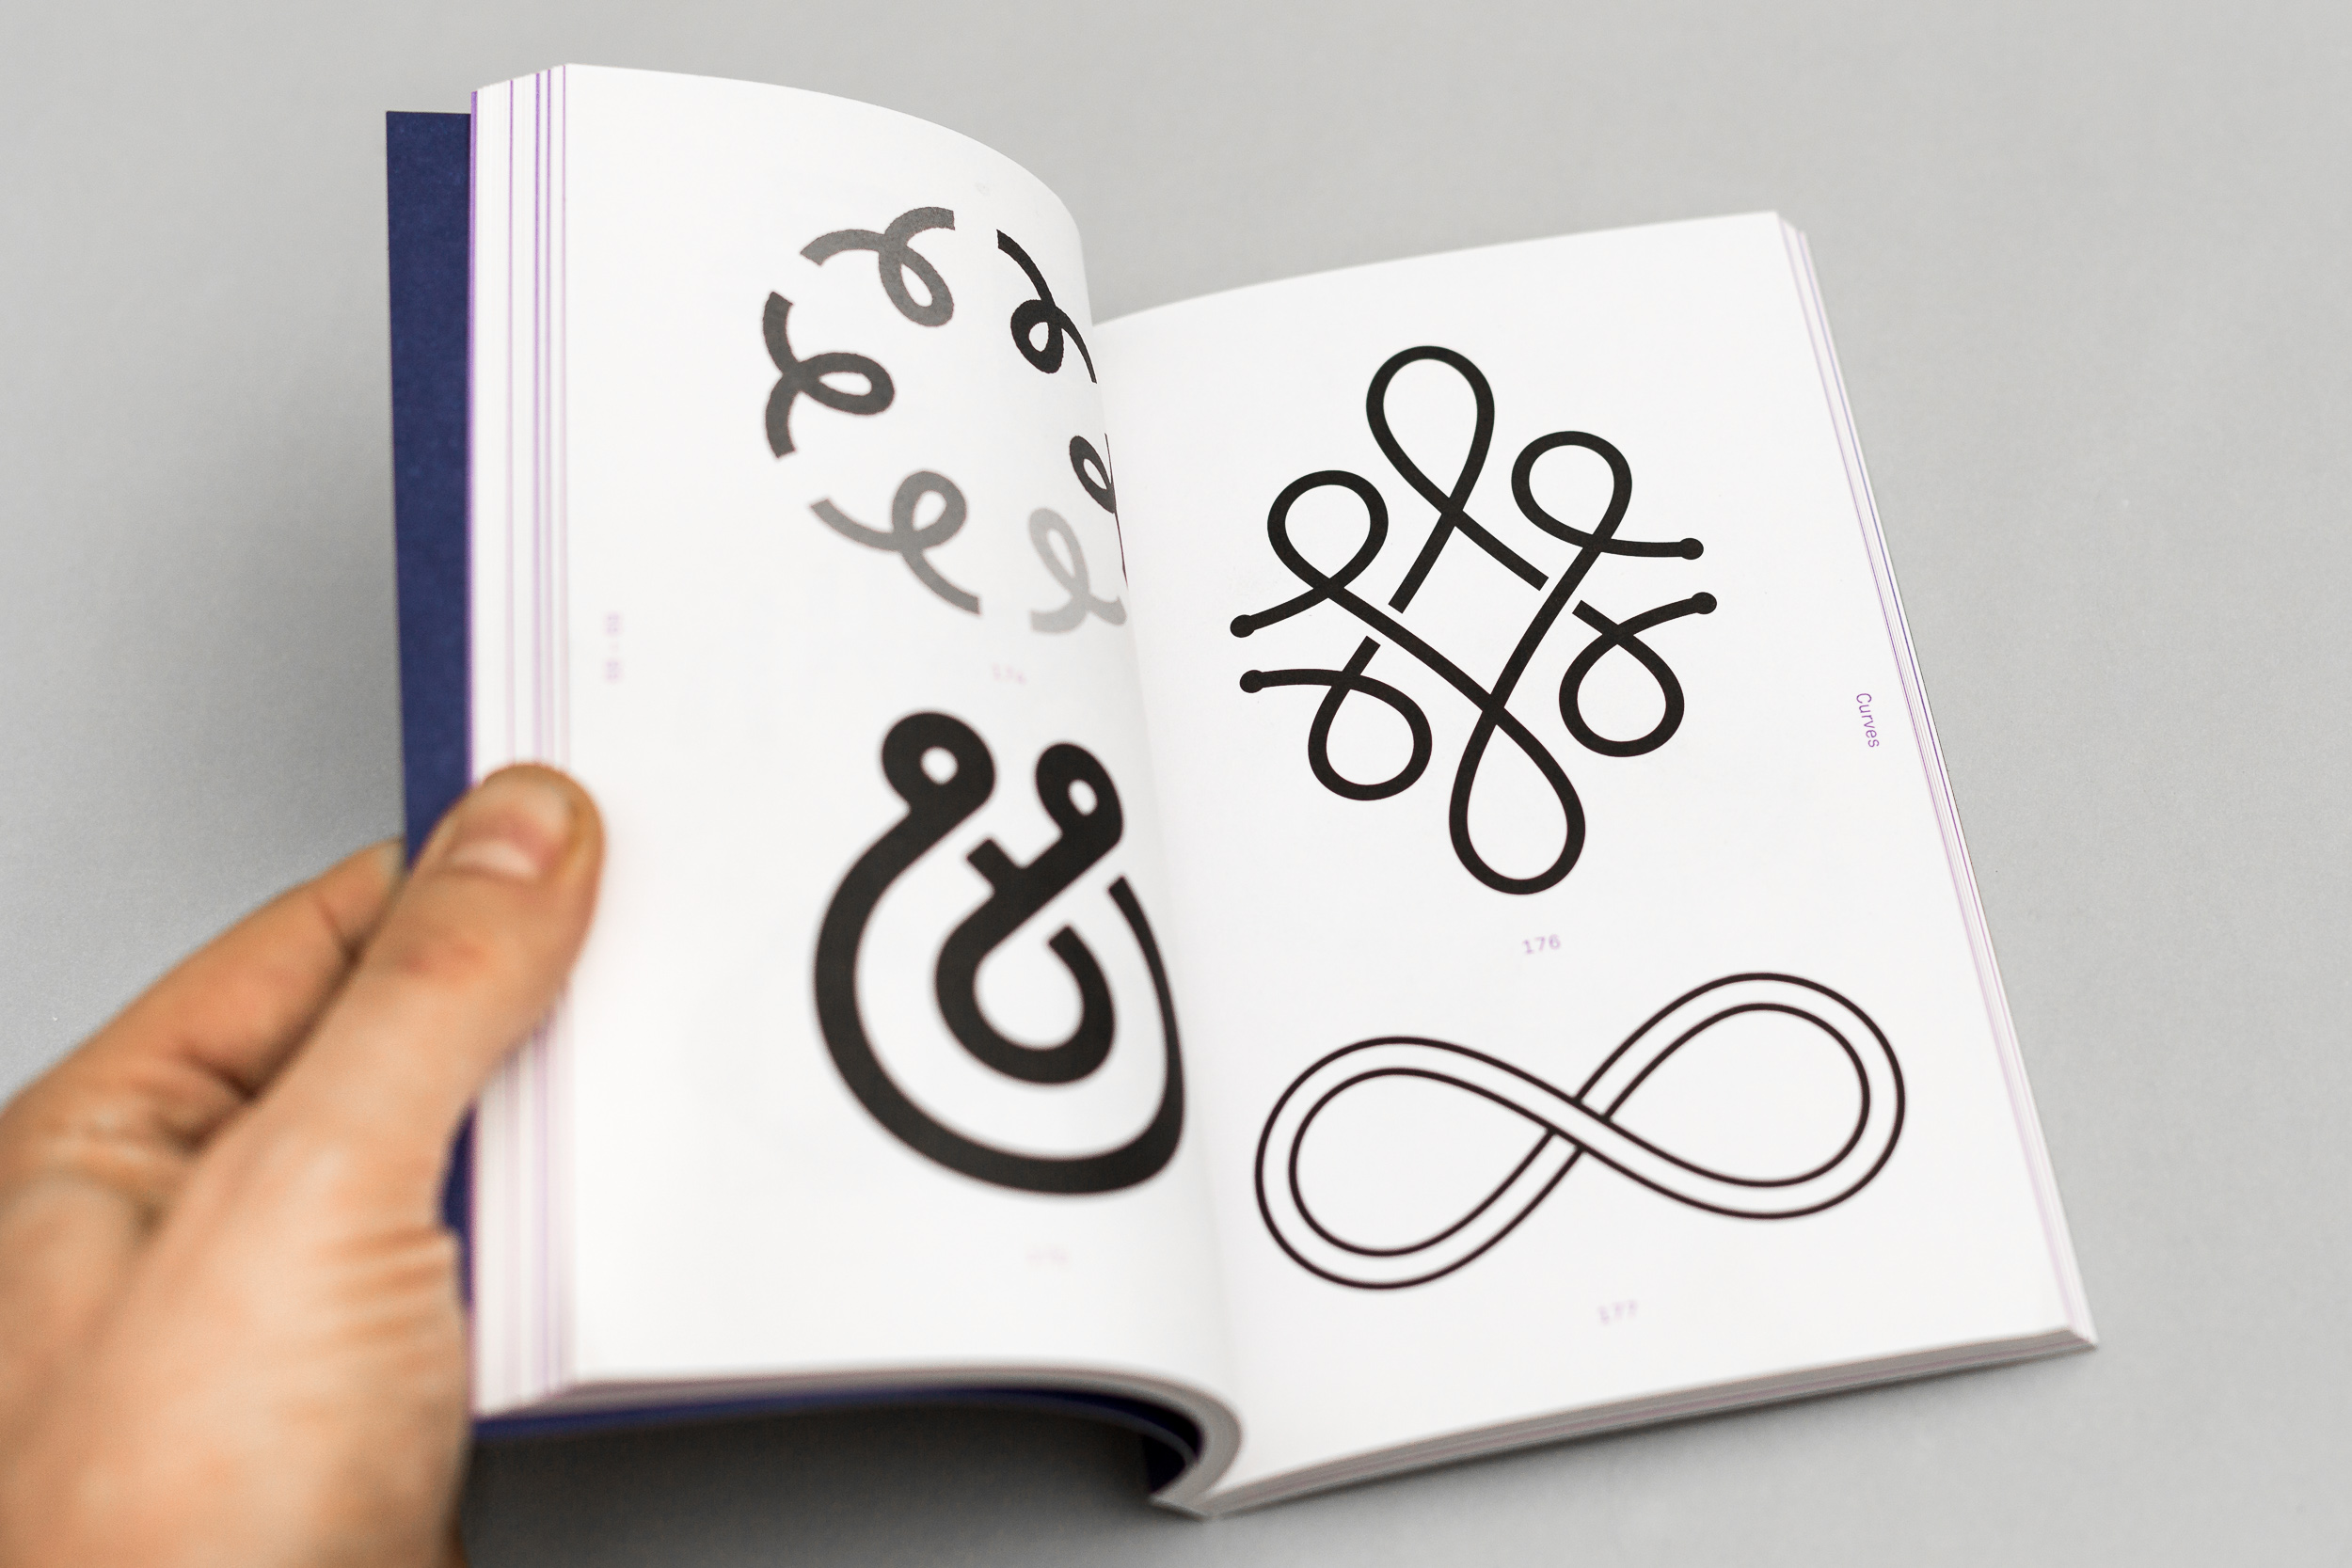 logo-published-in-abstract-logo-book.jpg